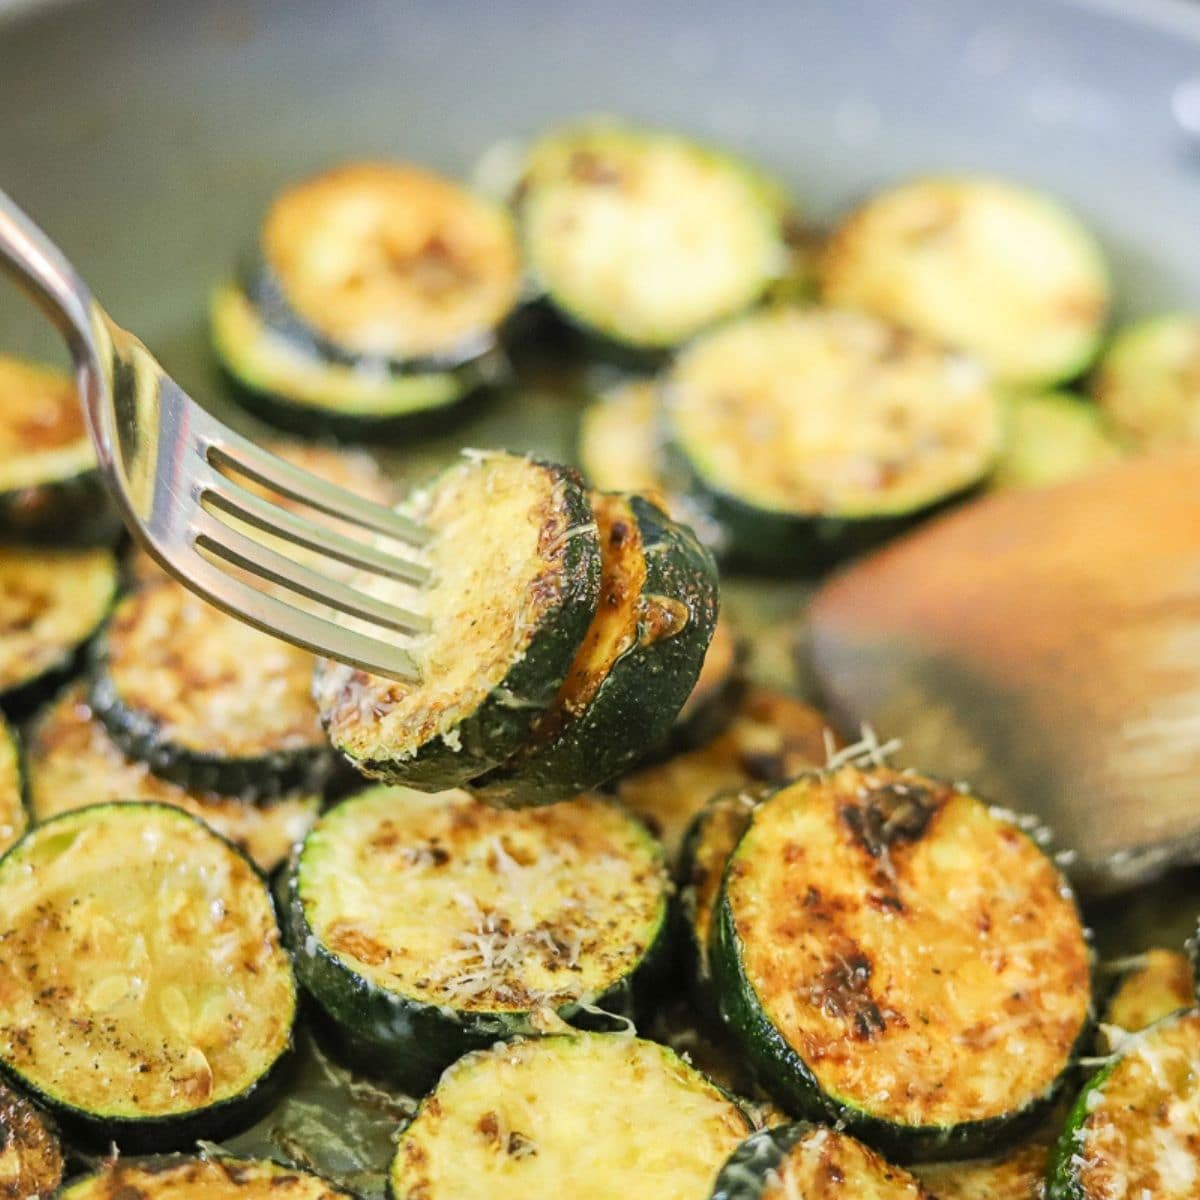 Garlic and Parmesan Sauteed Zucchini being picked up from the skillet with a silver fork